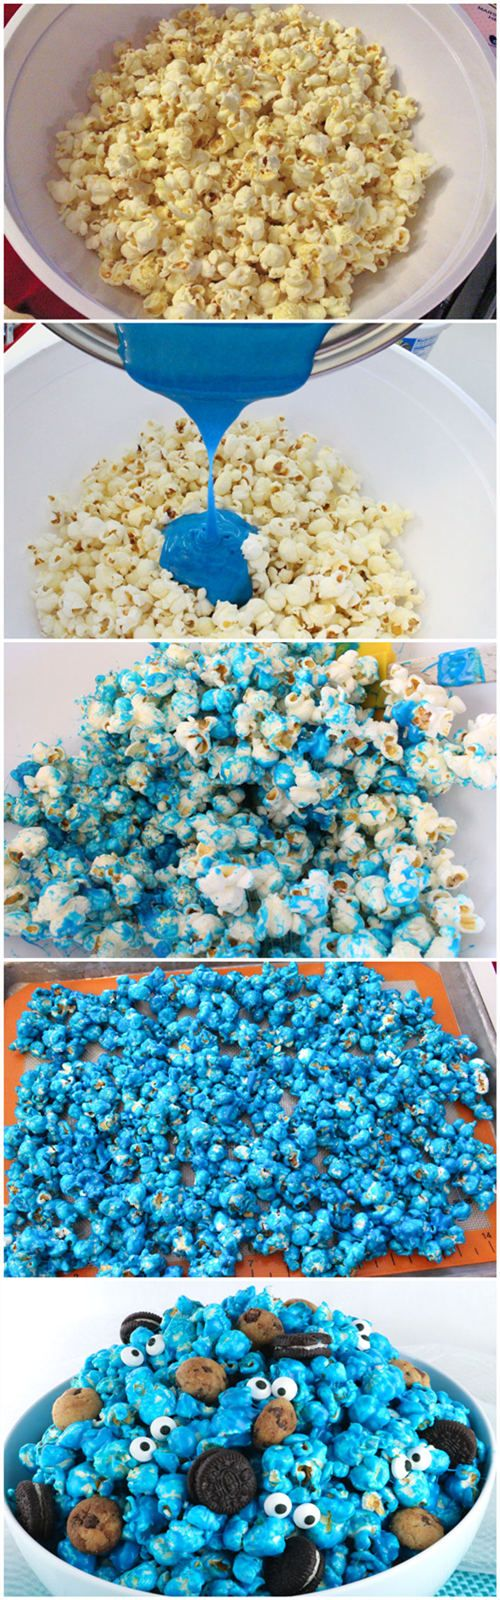 Elmo 1st birthday party ideas birthday party sesamestreet - Cookie Monster Popcorn Cookie Cake Birthdaybirthday Cake Popcornelmo First